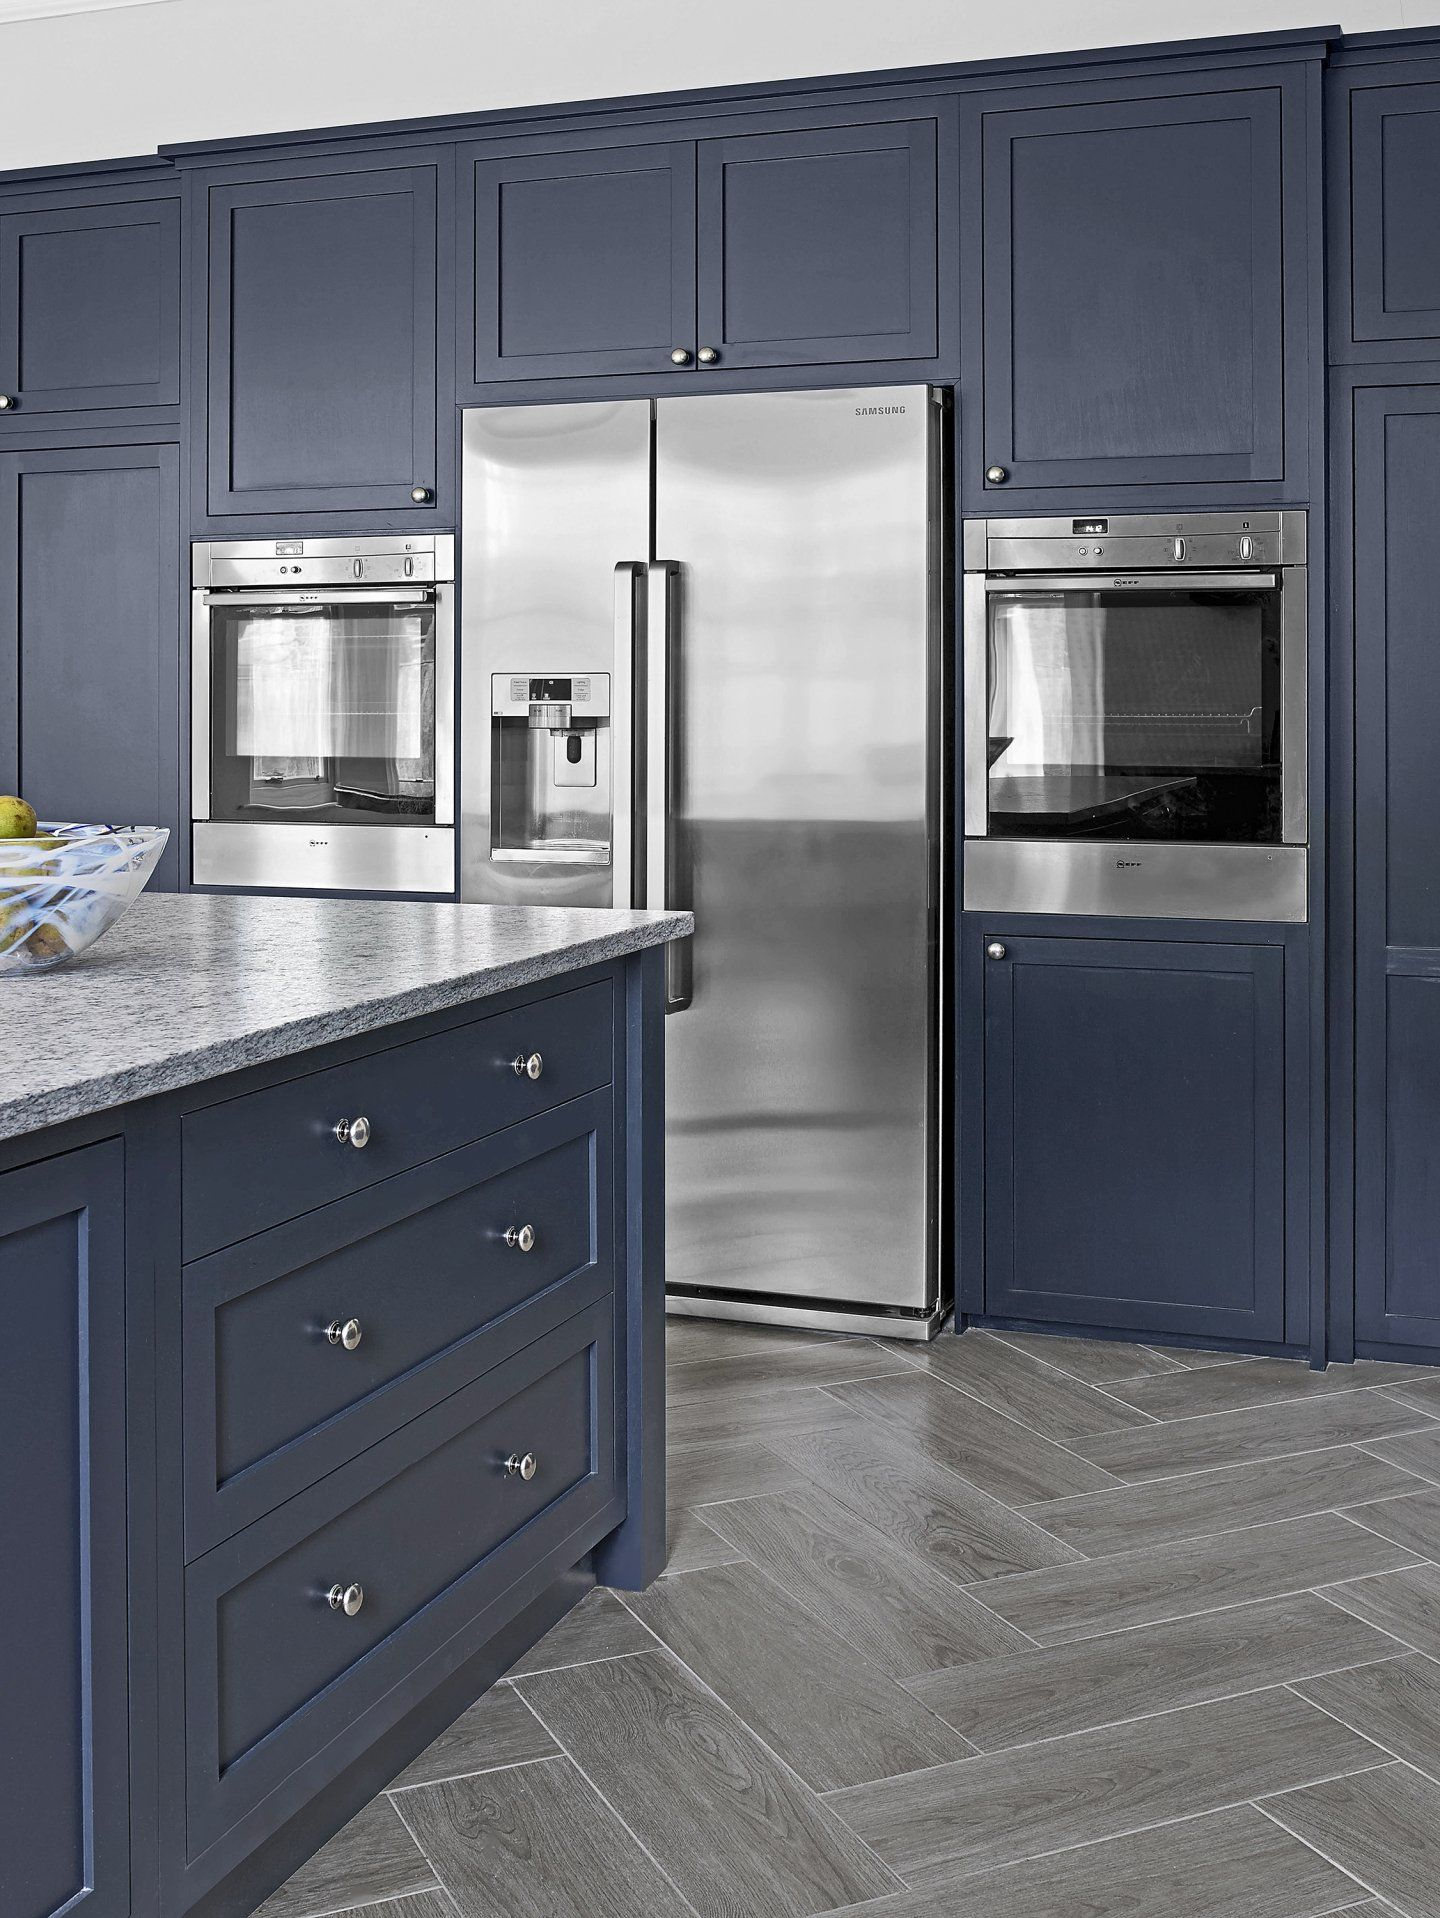 Read This Before You Paint Your Kitchen Cabinets